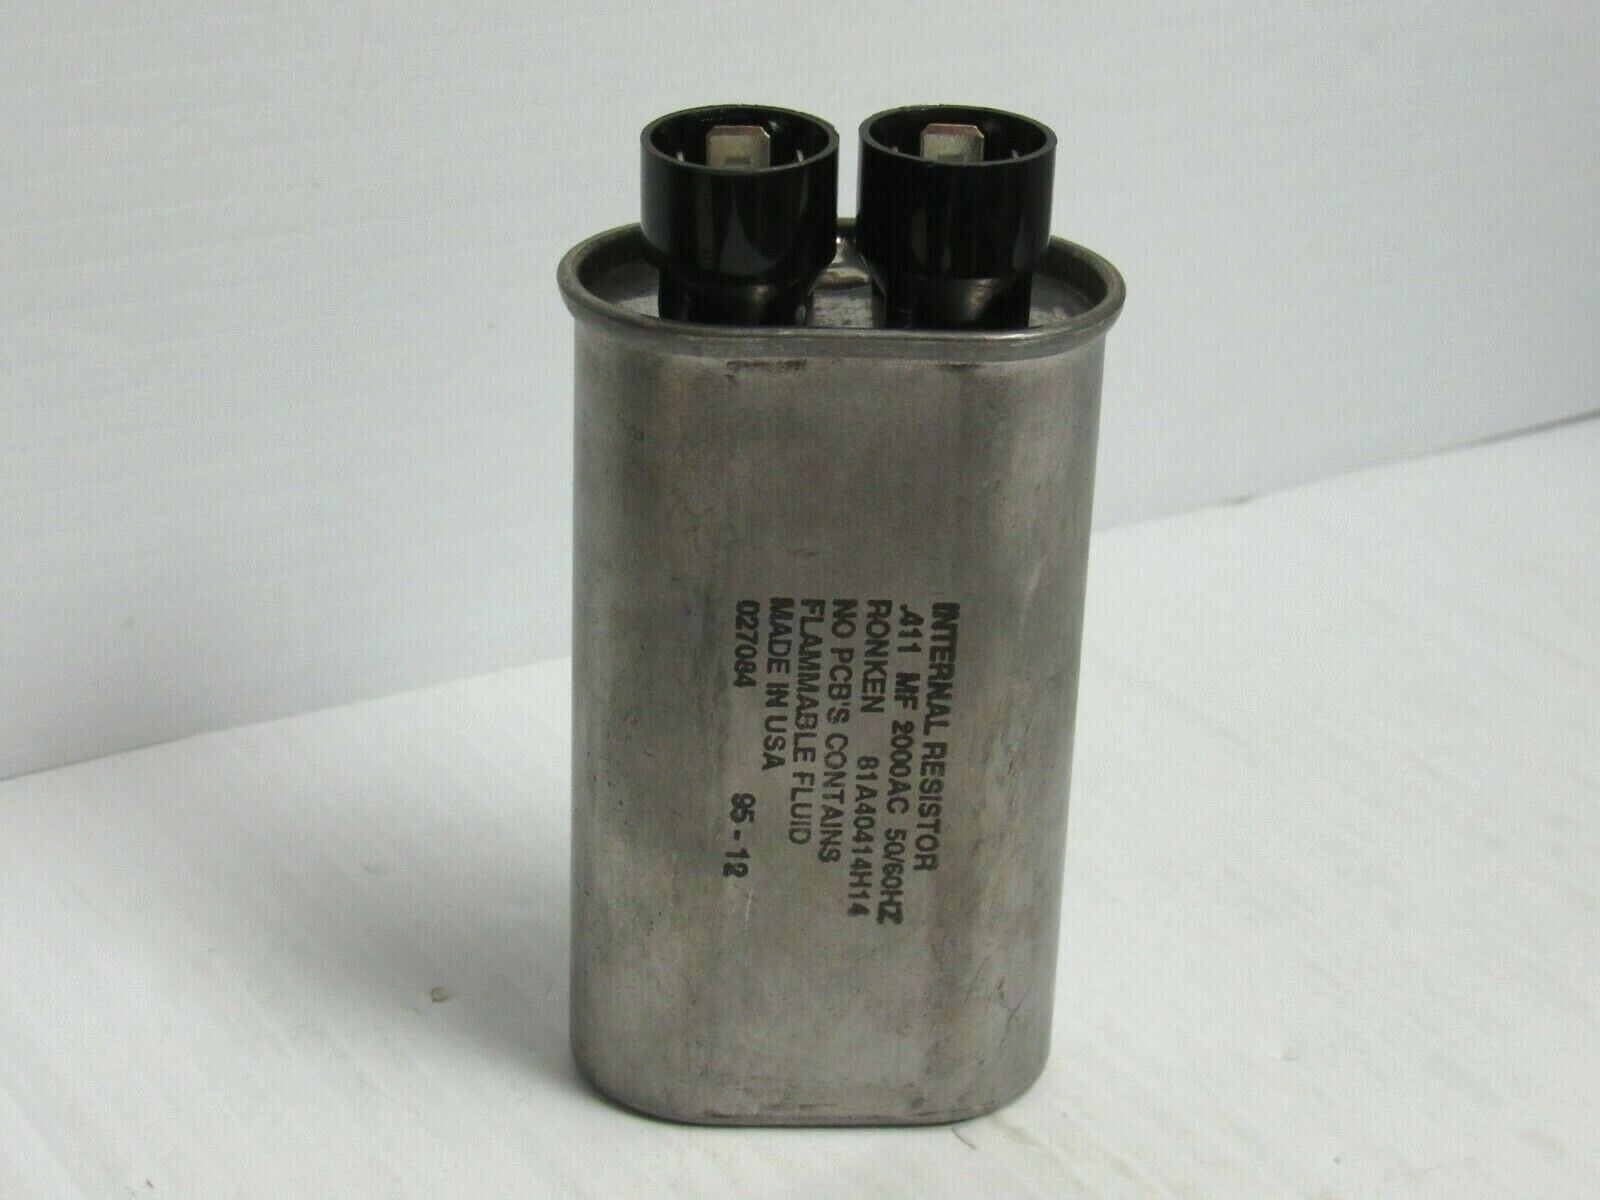 NEW RONKEN CAPACITOR INTERNAL RESISTOR 81A40414H14 .411 MF 2000AC  - $30.00